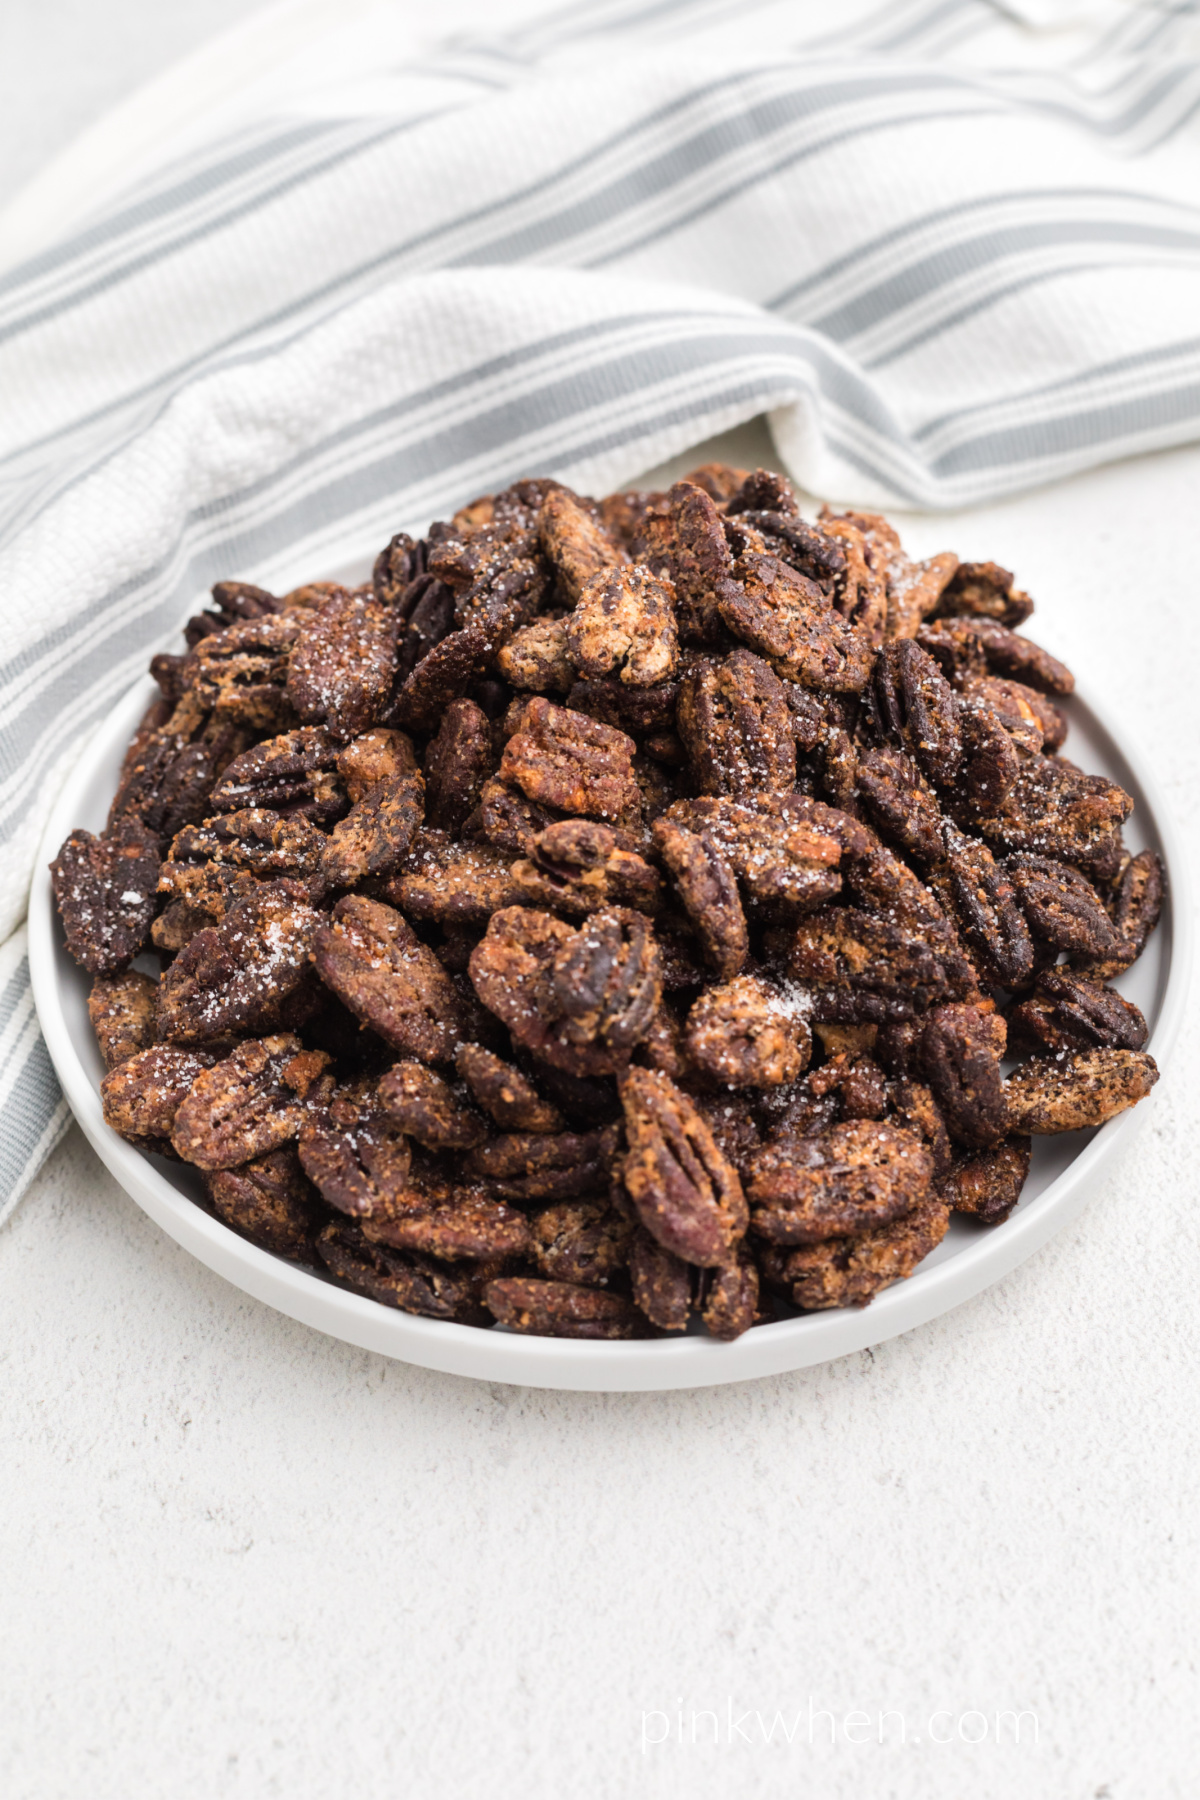 Candied pecans made in the air fryer, on a white plate ready to eat.